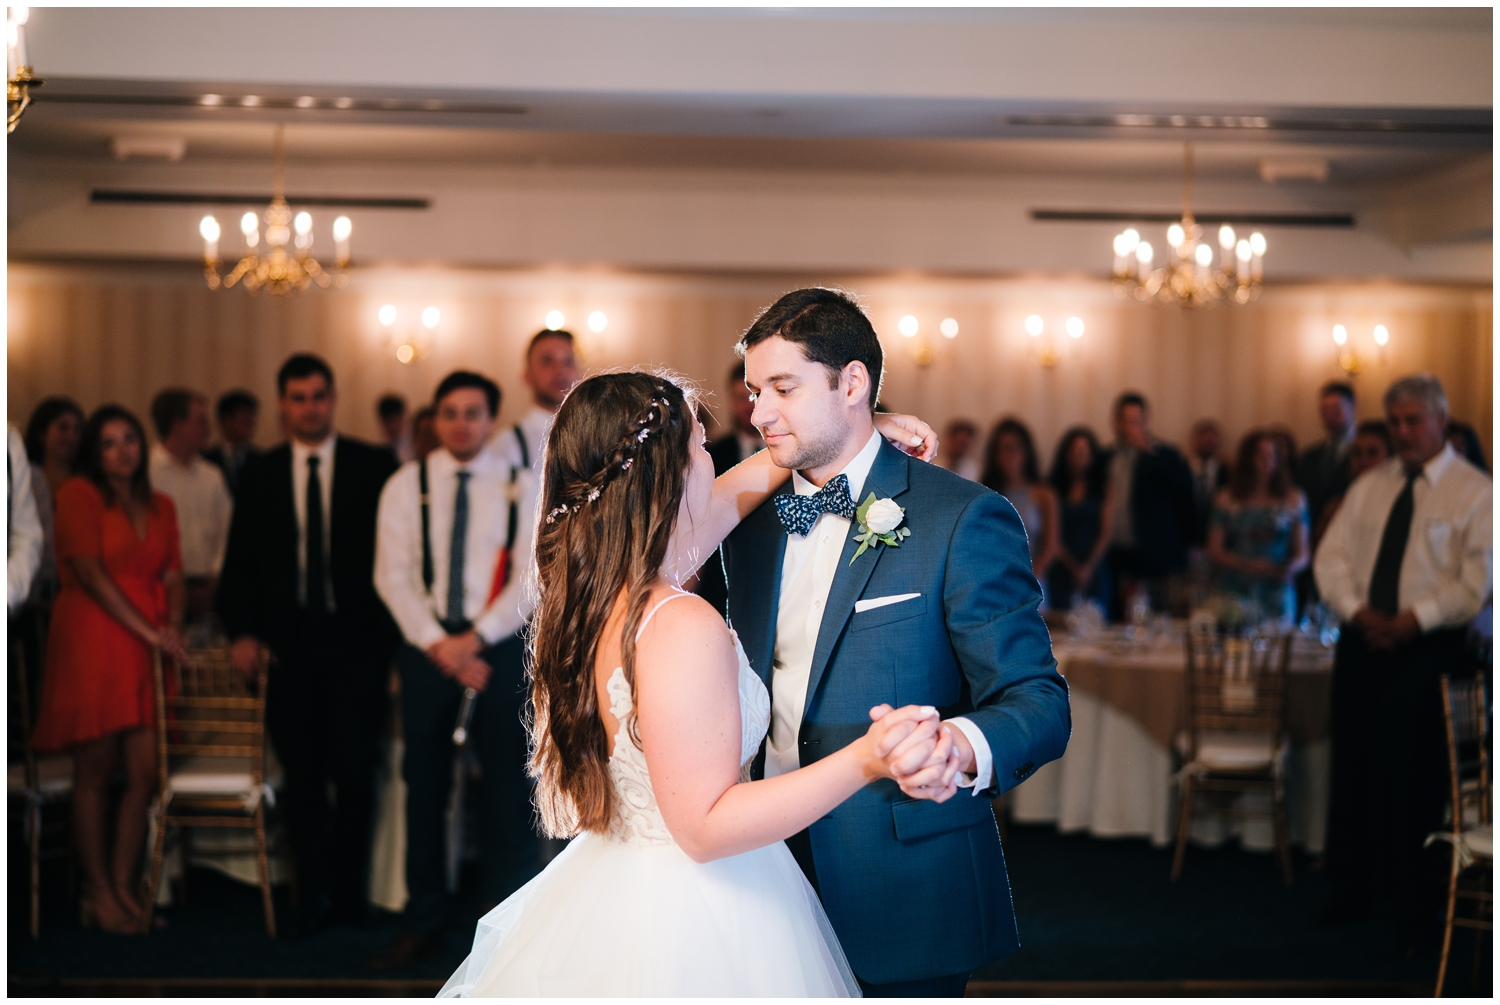 Madison Beach Hotel Wedding - Steven & Jessica_0196.jpg